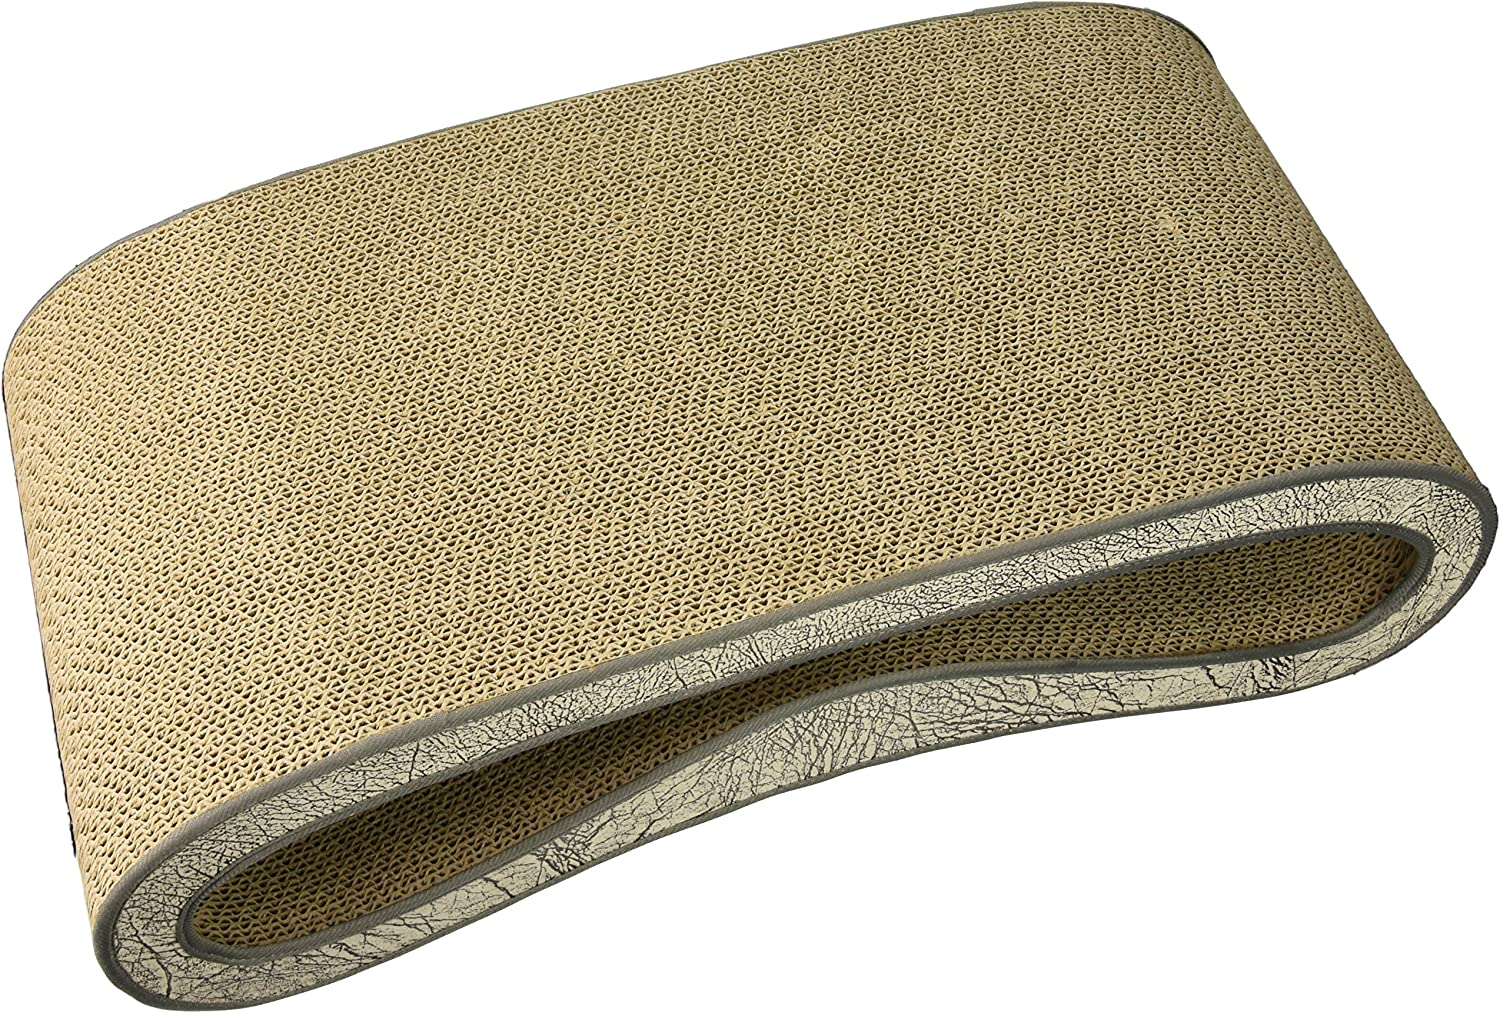 P.L.A.Y. (Pet Lifestyle And You), Durable High Quality Leeloo Cat Scratcher,  Cat Lounge Bed, Ash Grey  Chocolate